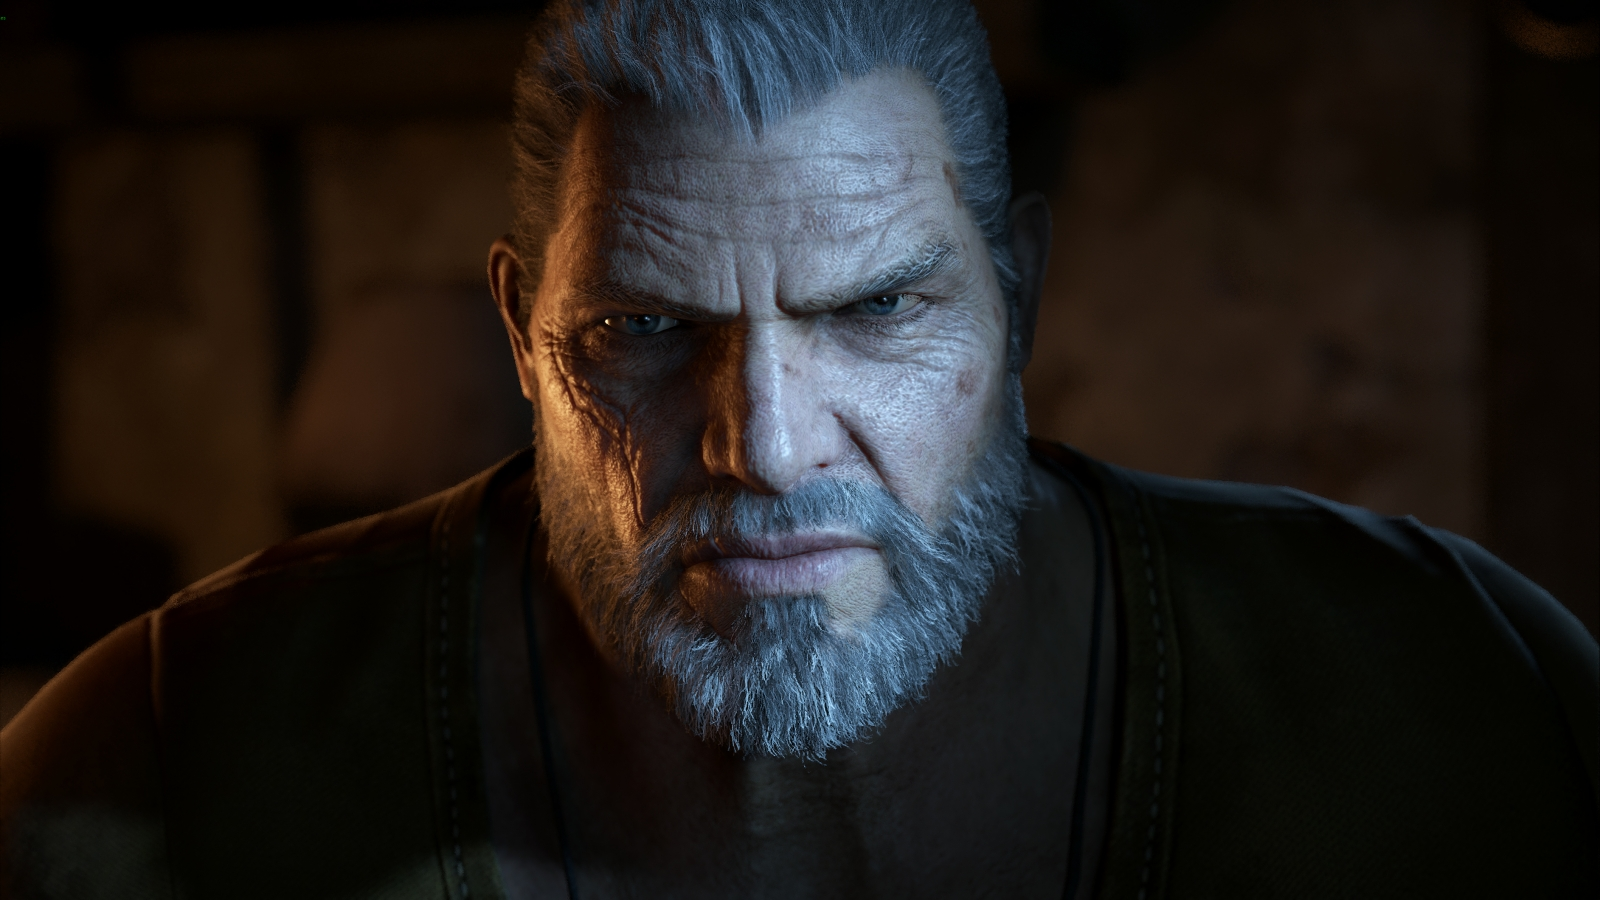 Gears of War 4 Marcus Fenix